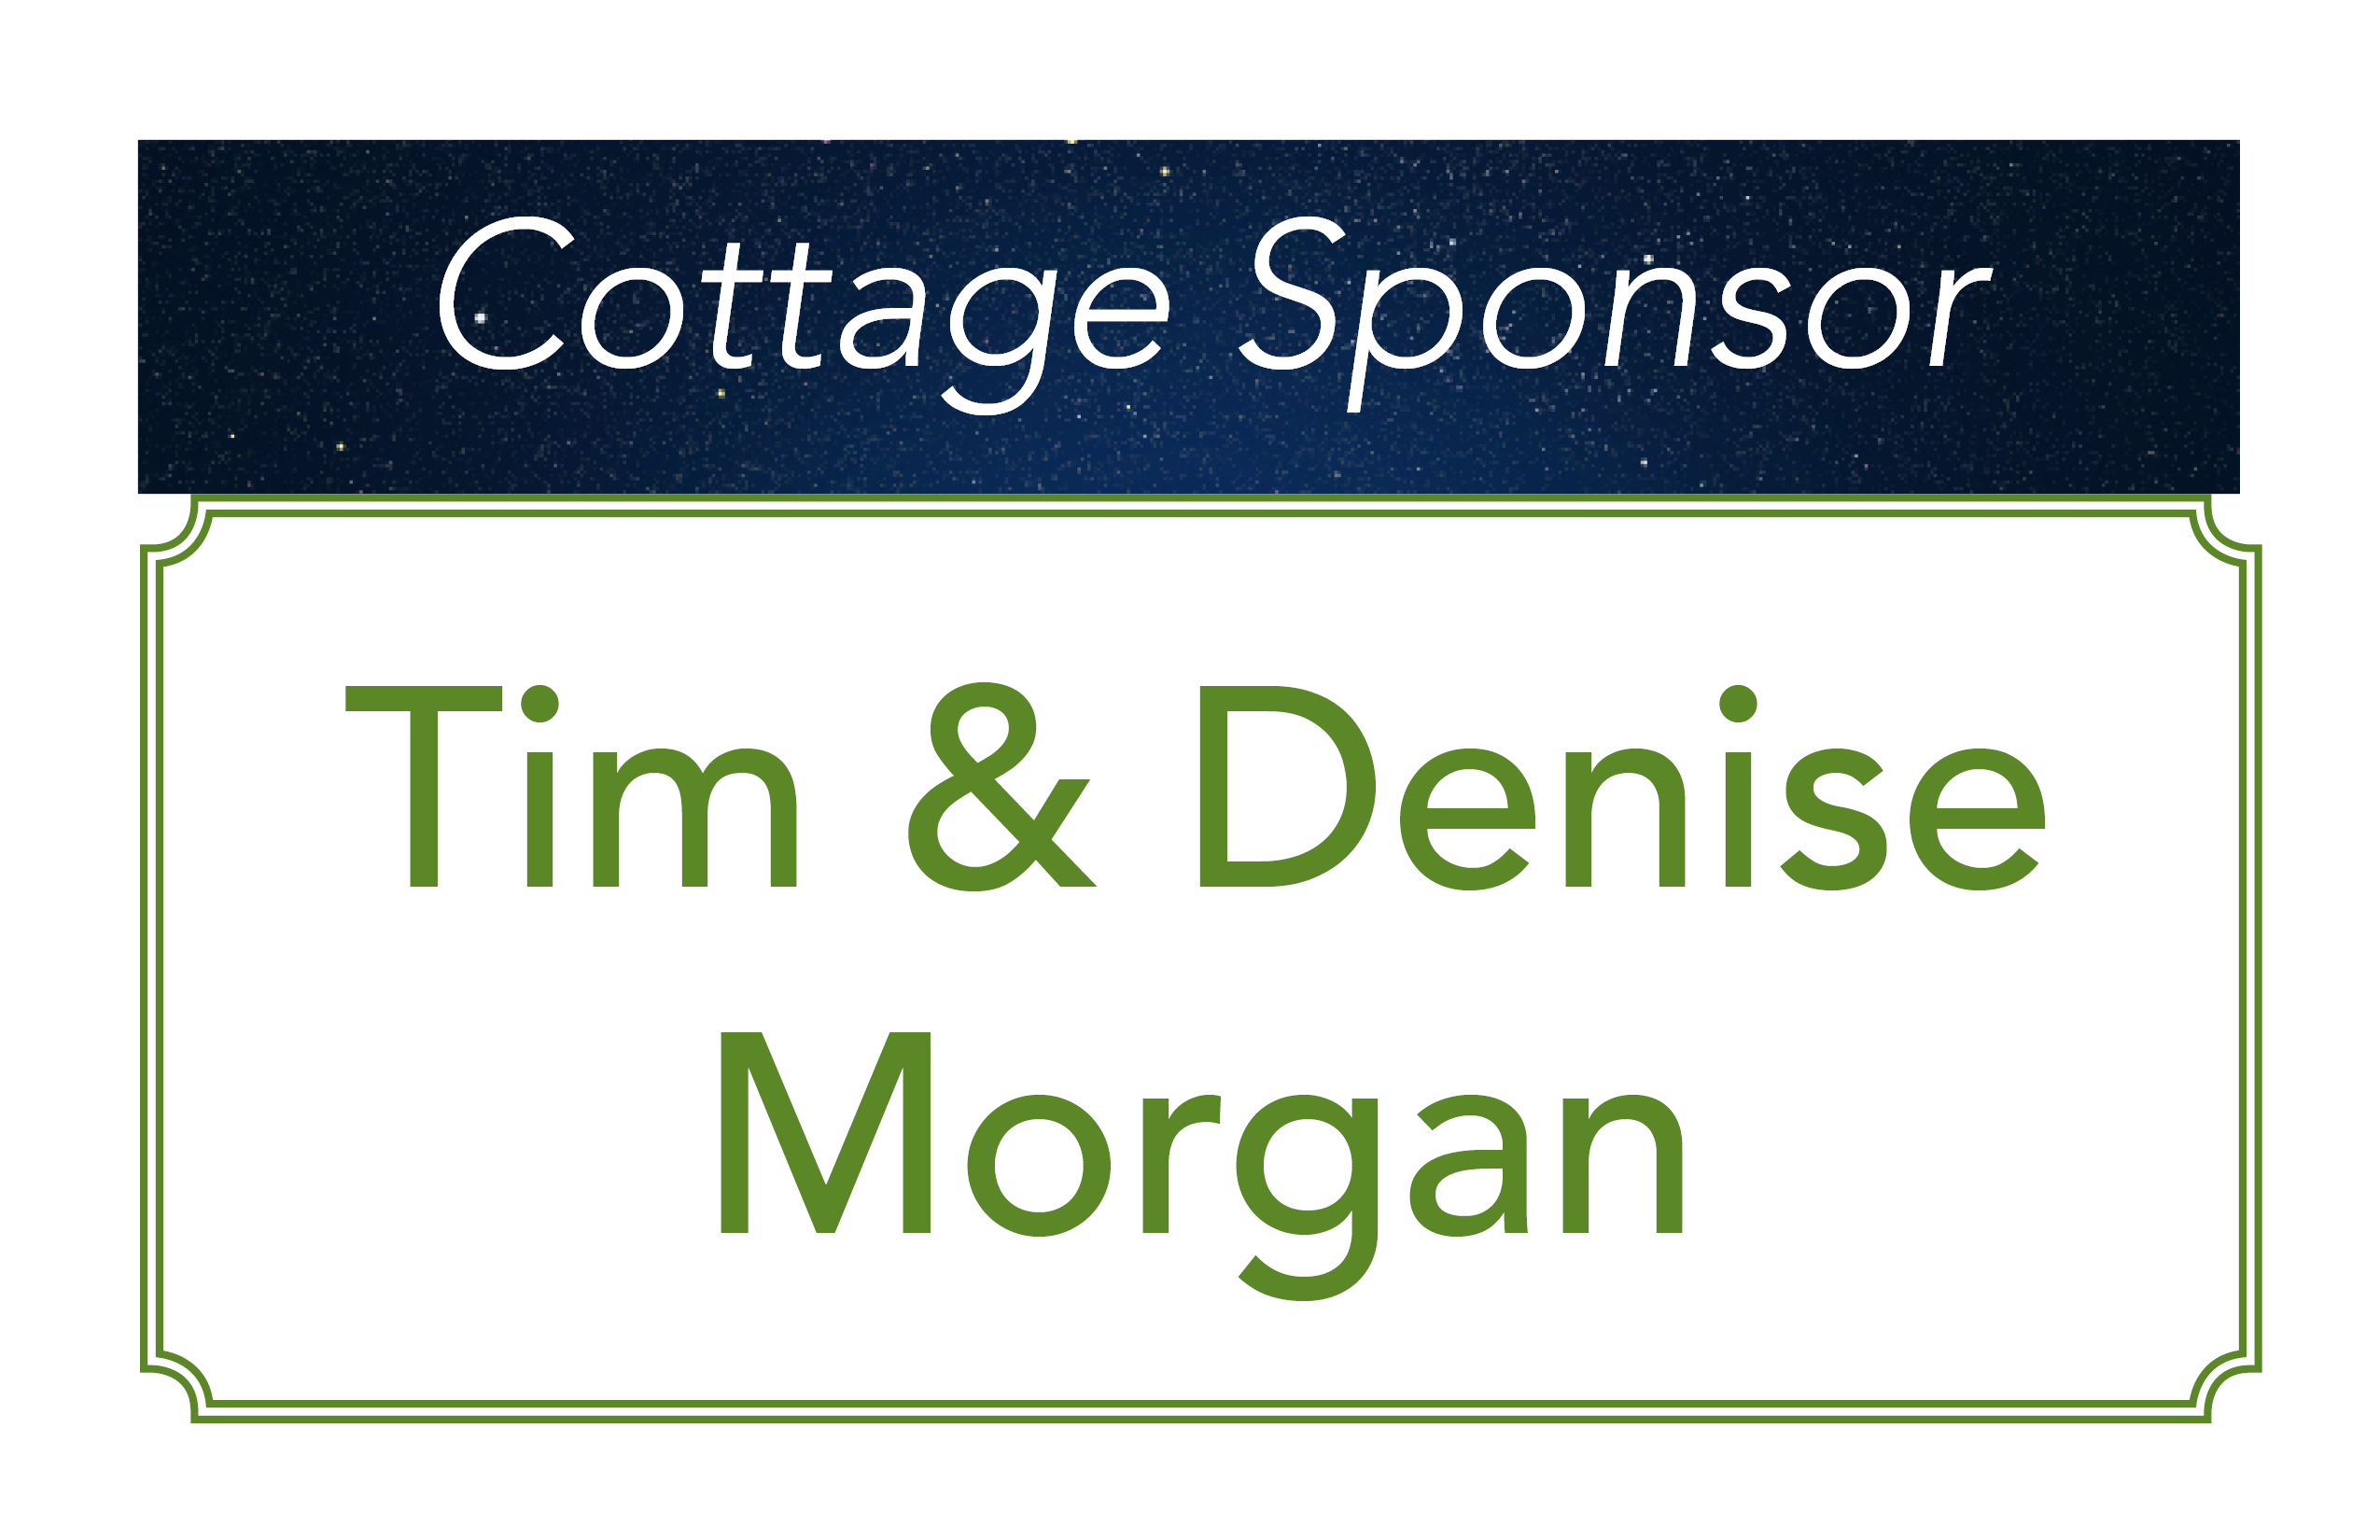 Tim & Denise Morgan, Cottage Sponsor